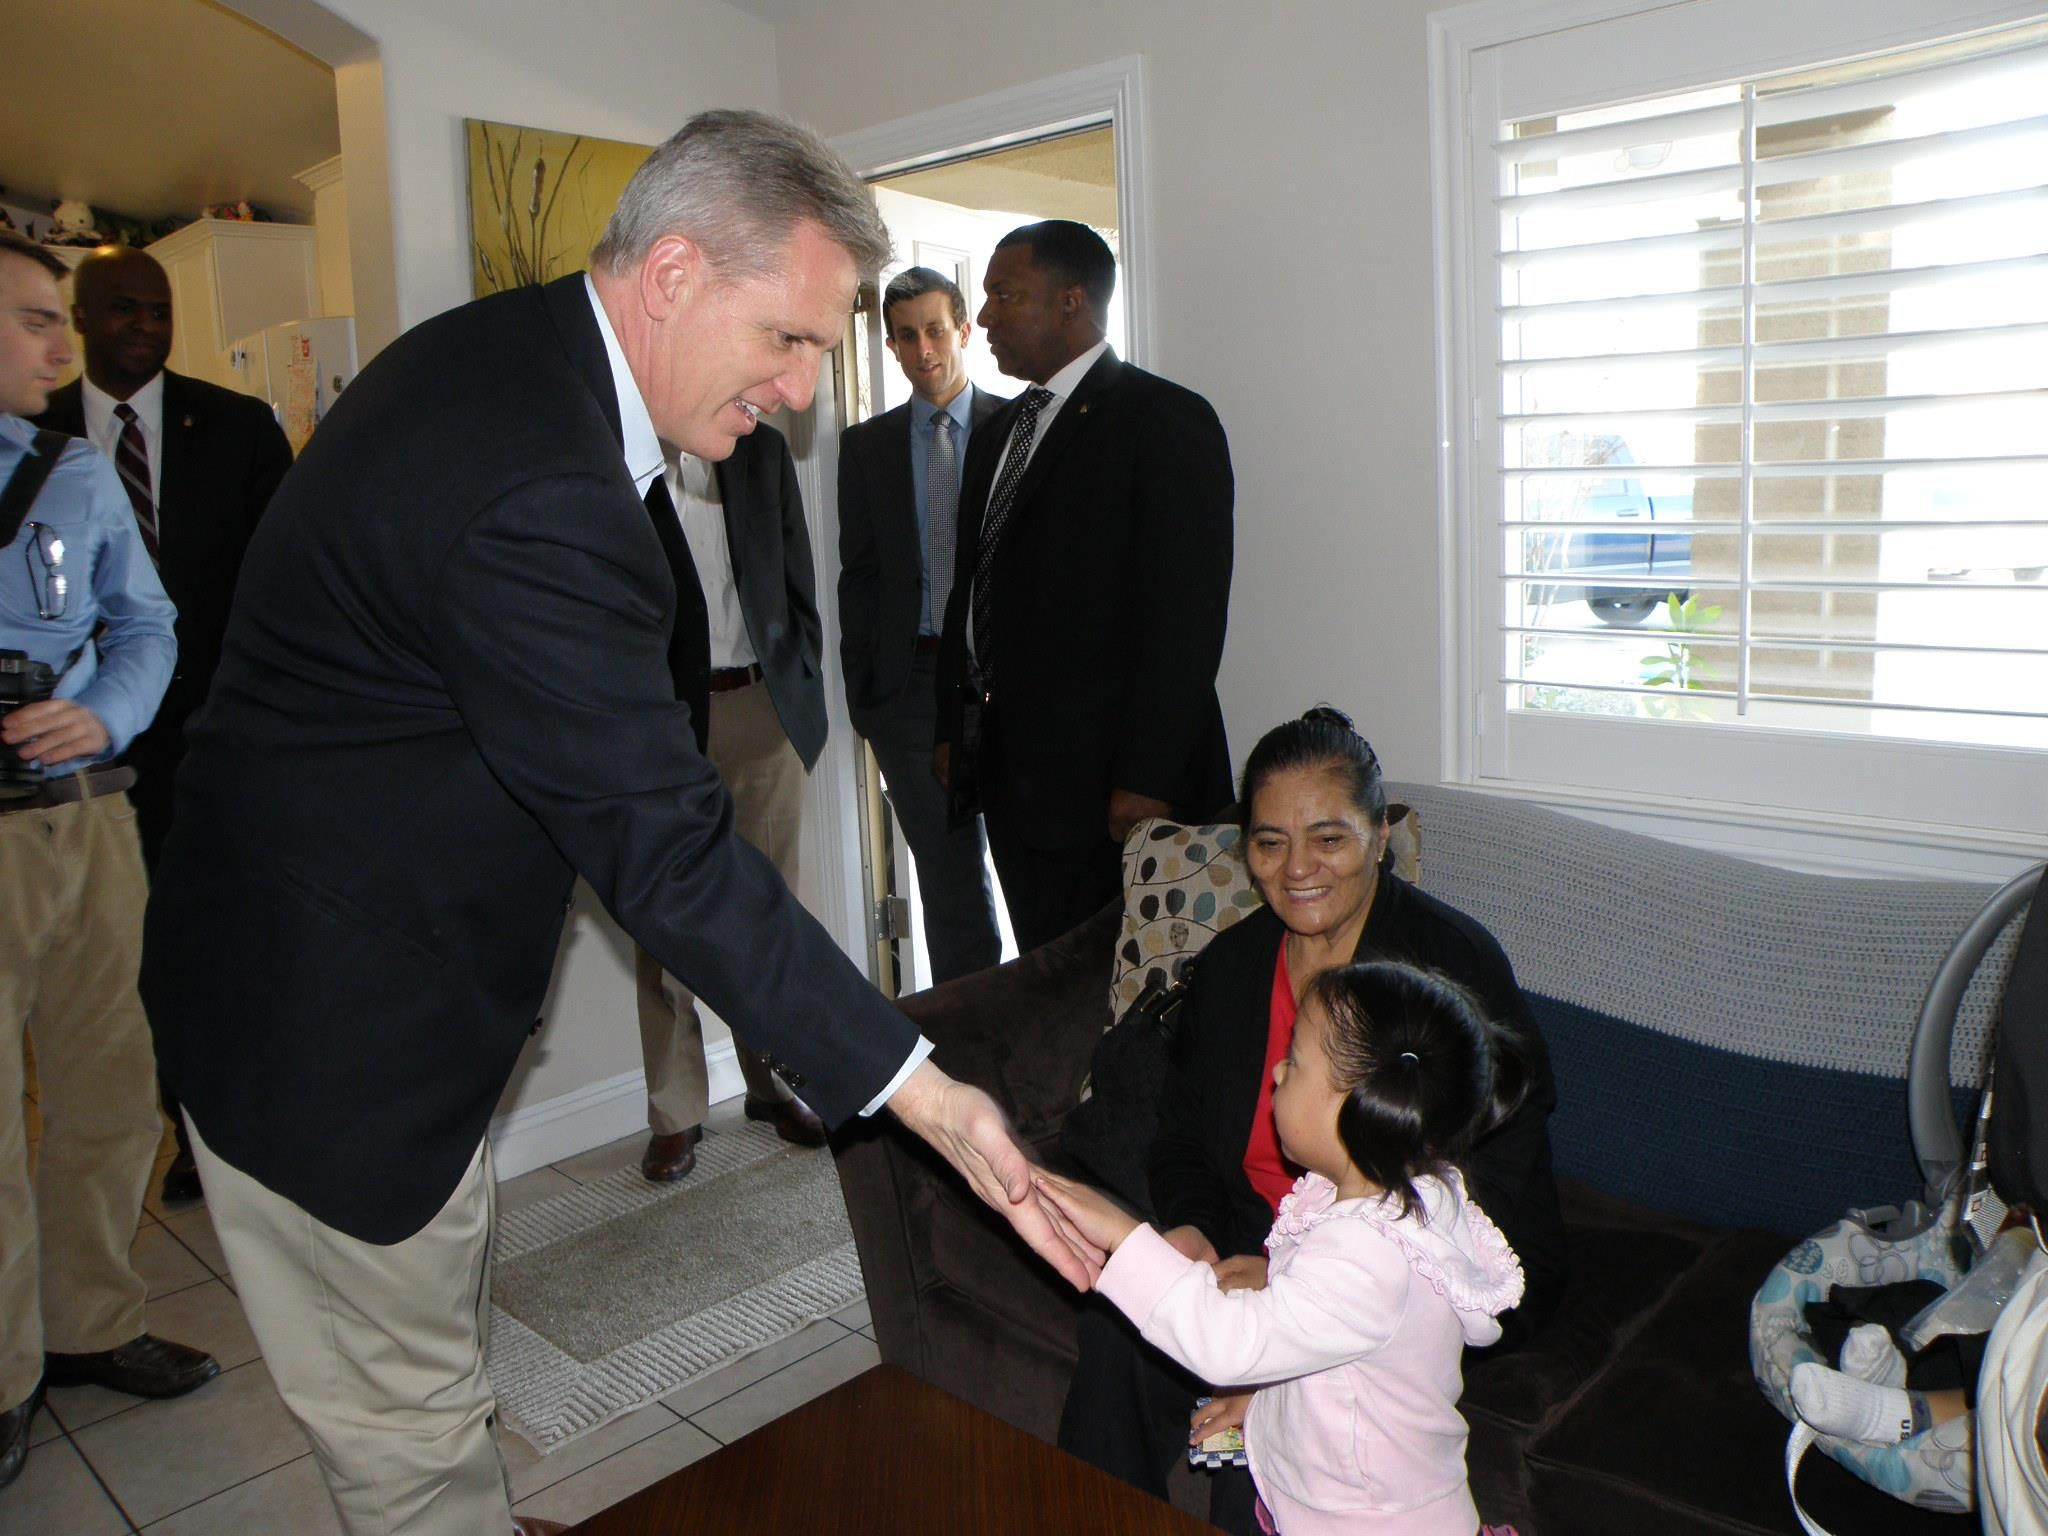 House Minority Whip Congressman Kevin McCarthy visits the BRMH, 1/13 #gopwhip